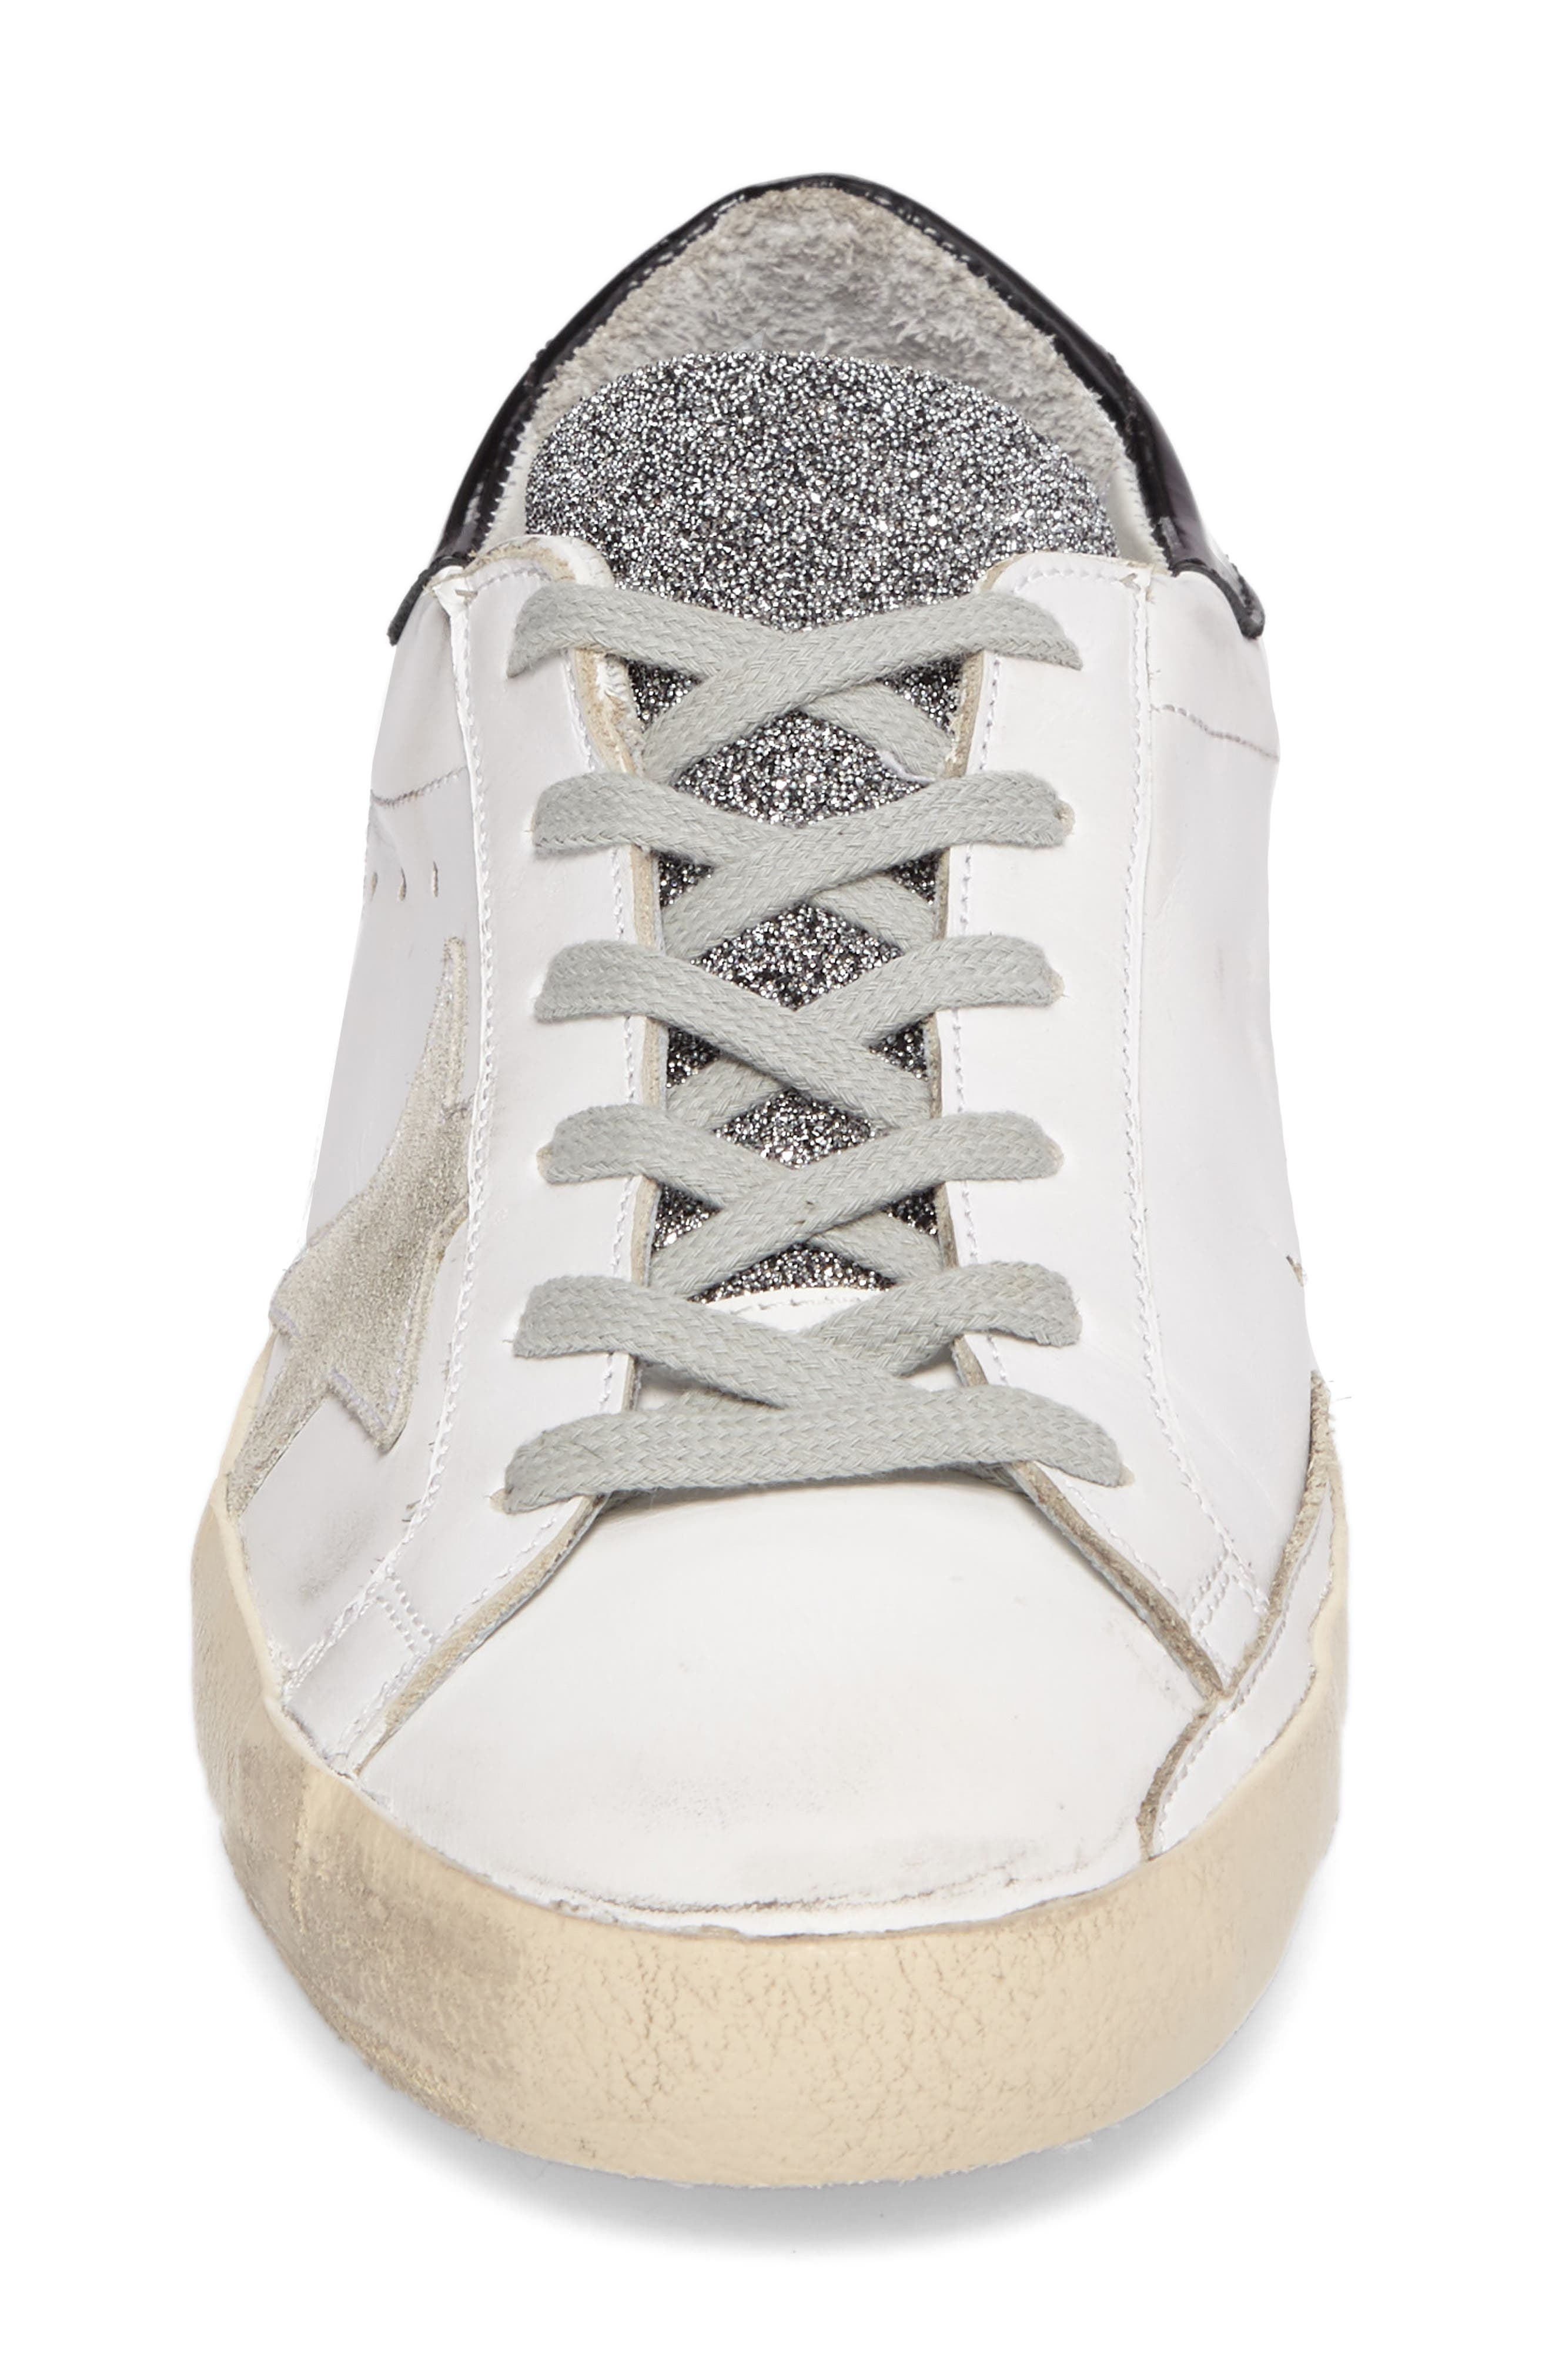 Superstar Low Top Sneaker,                             Alternate thumbnail 4, color,                             100